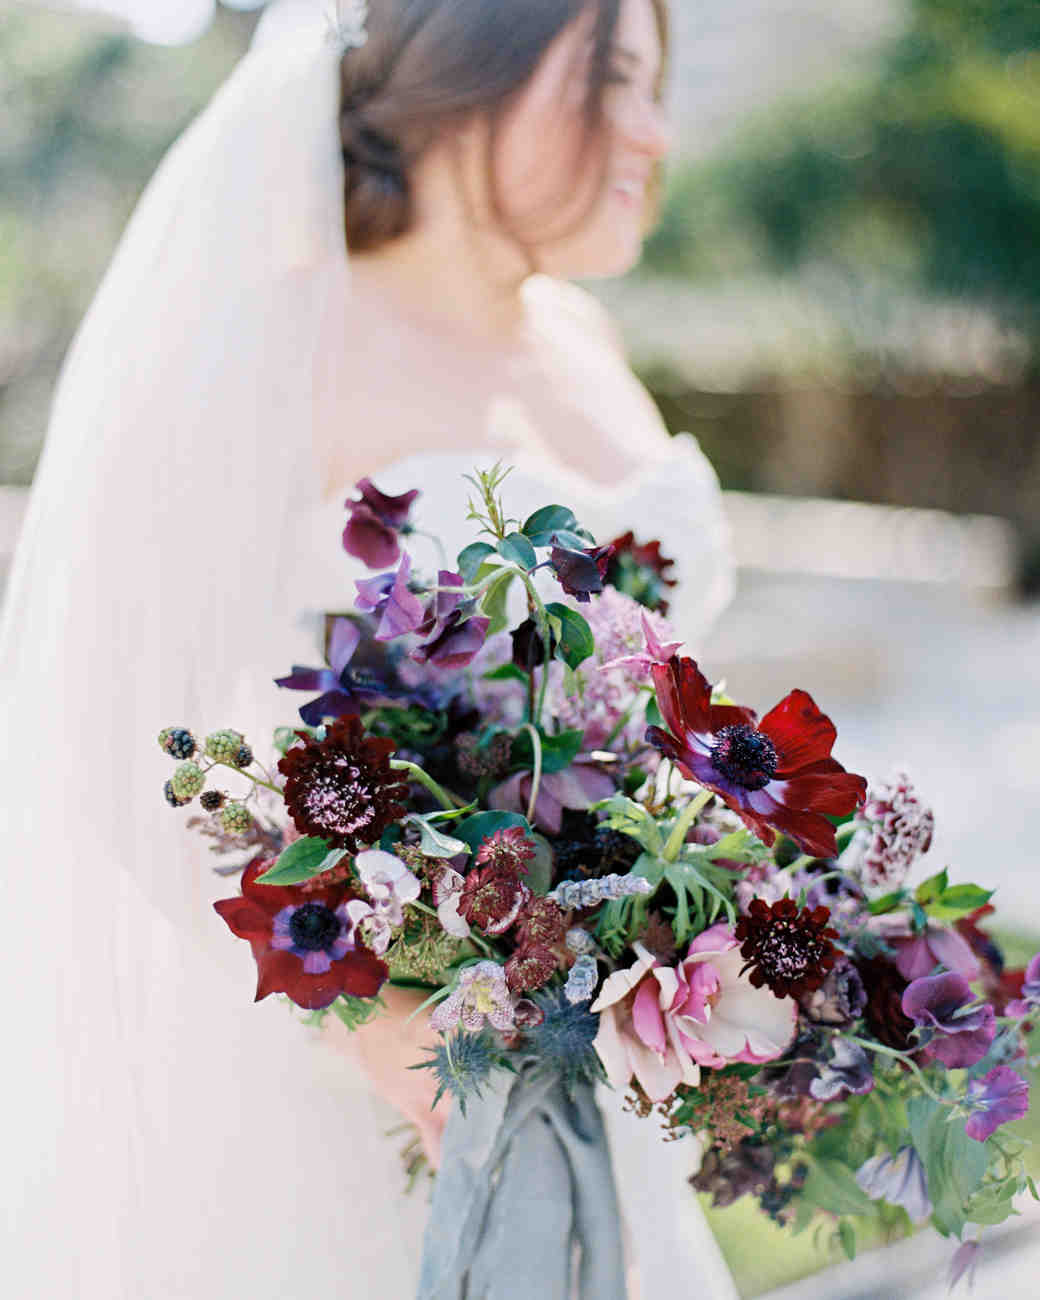 Flower Wedding Bouquet: 52 Gorgeous Winter Wedding Bouquets